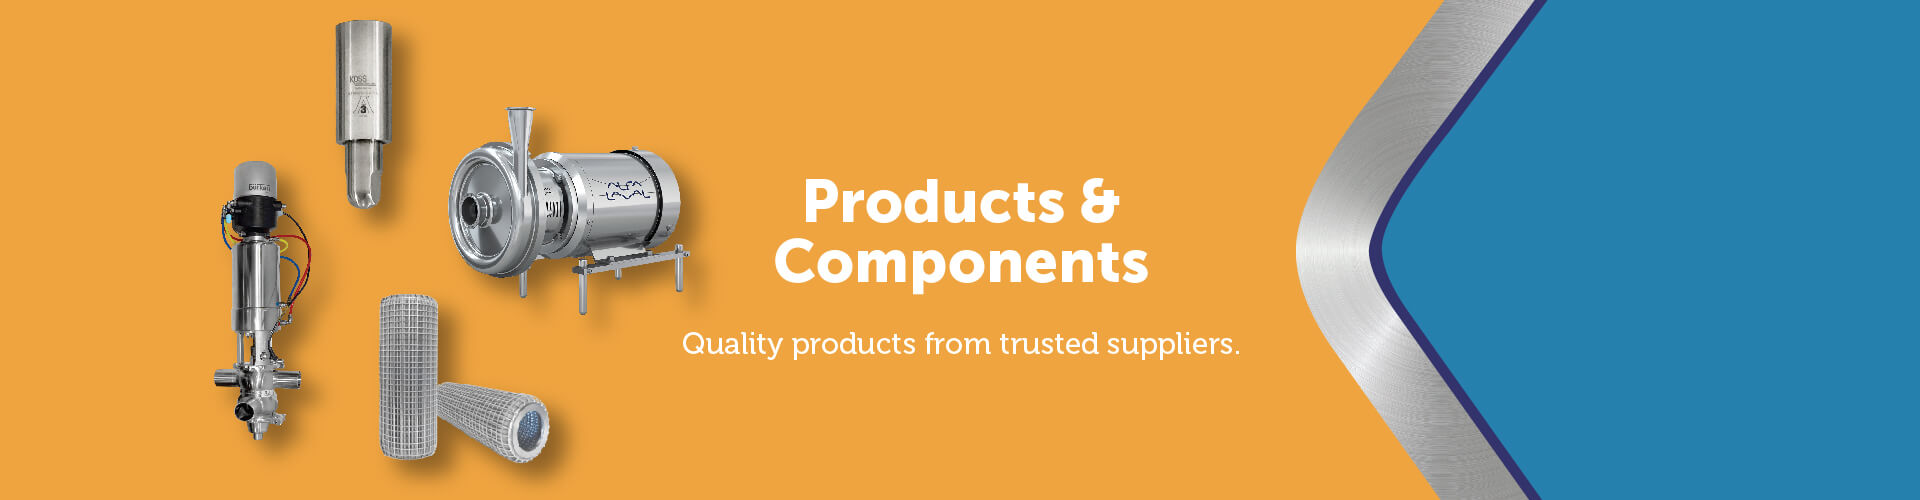 Koss Products & Components